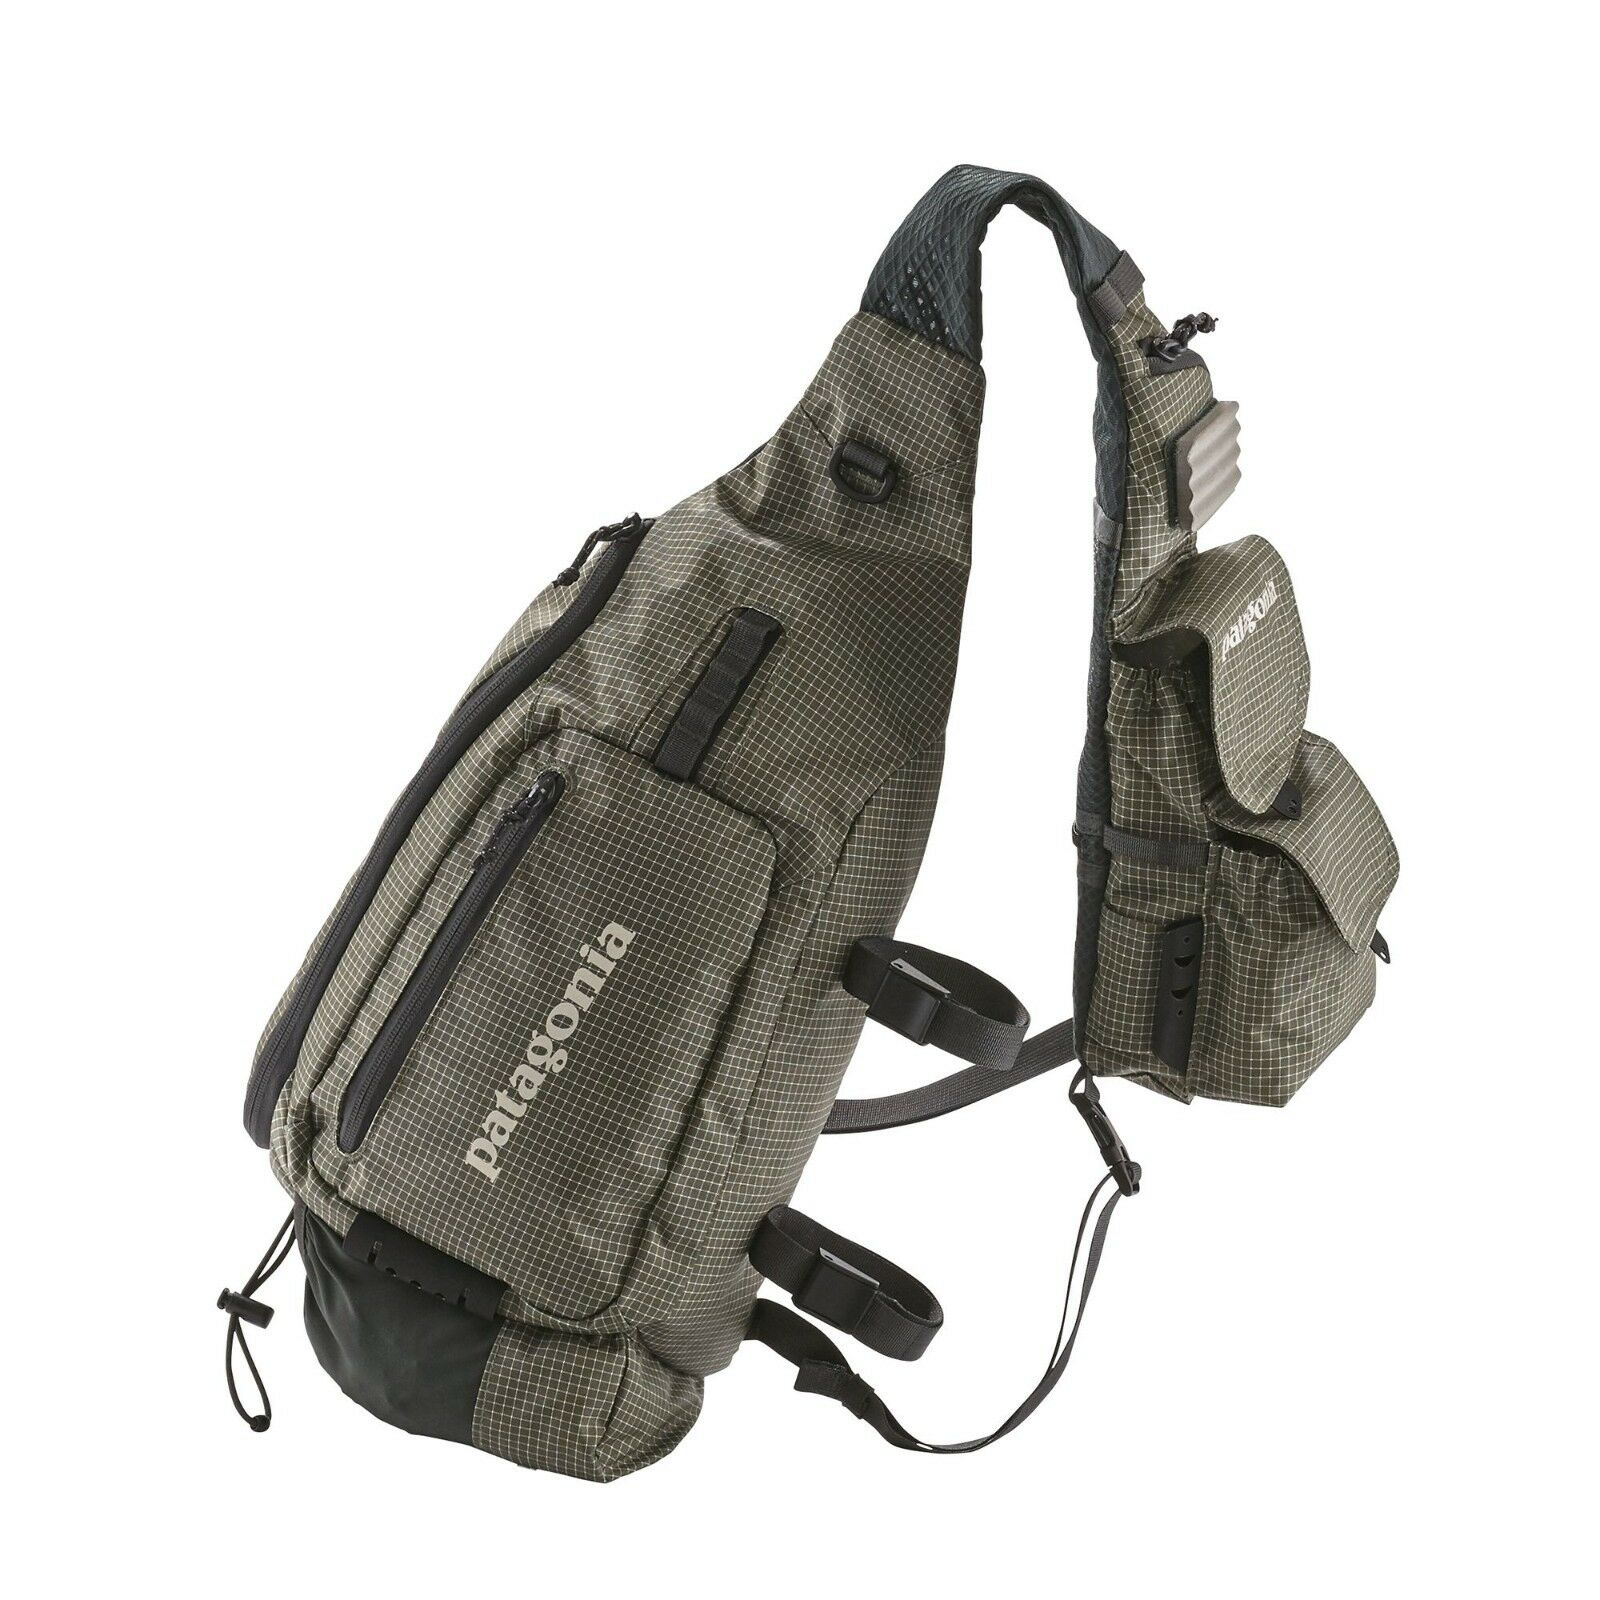 Patagonia fly fishing Vest Front Sling 8l Pack-light bog